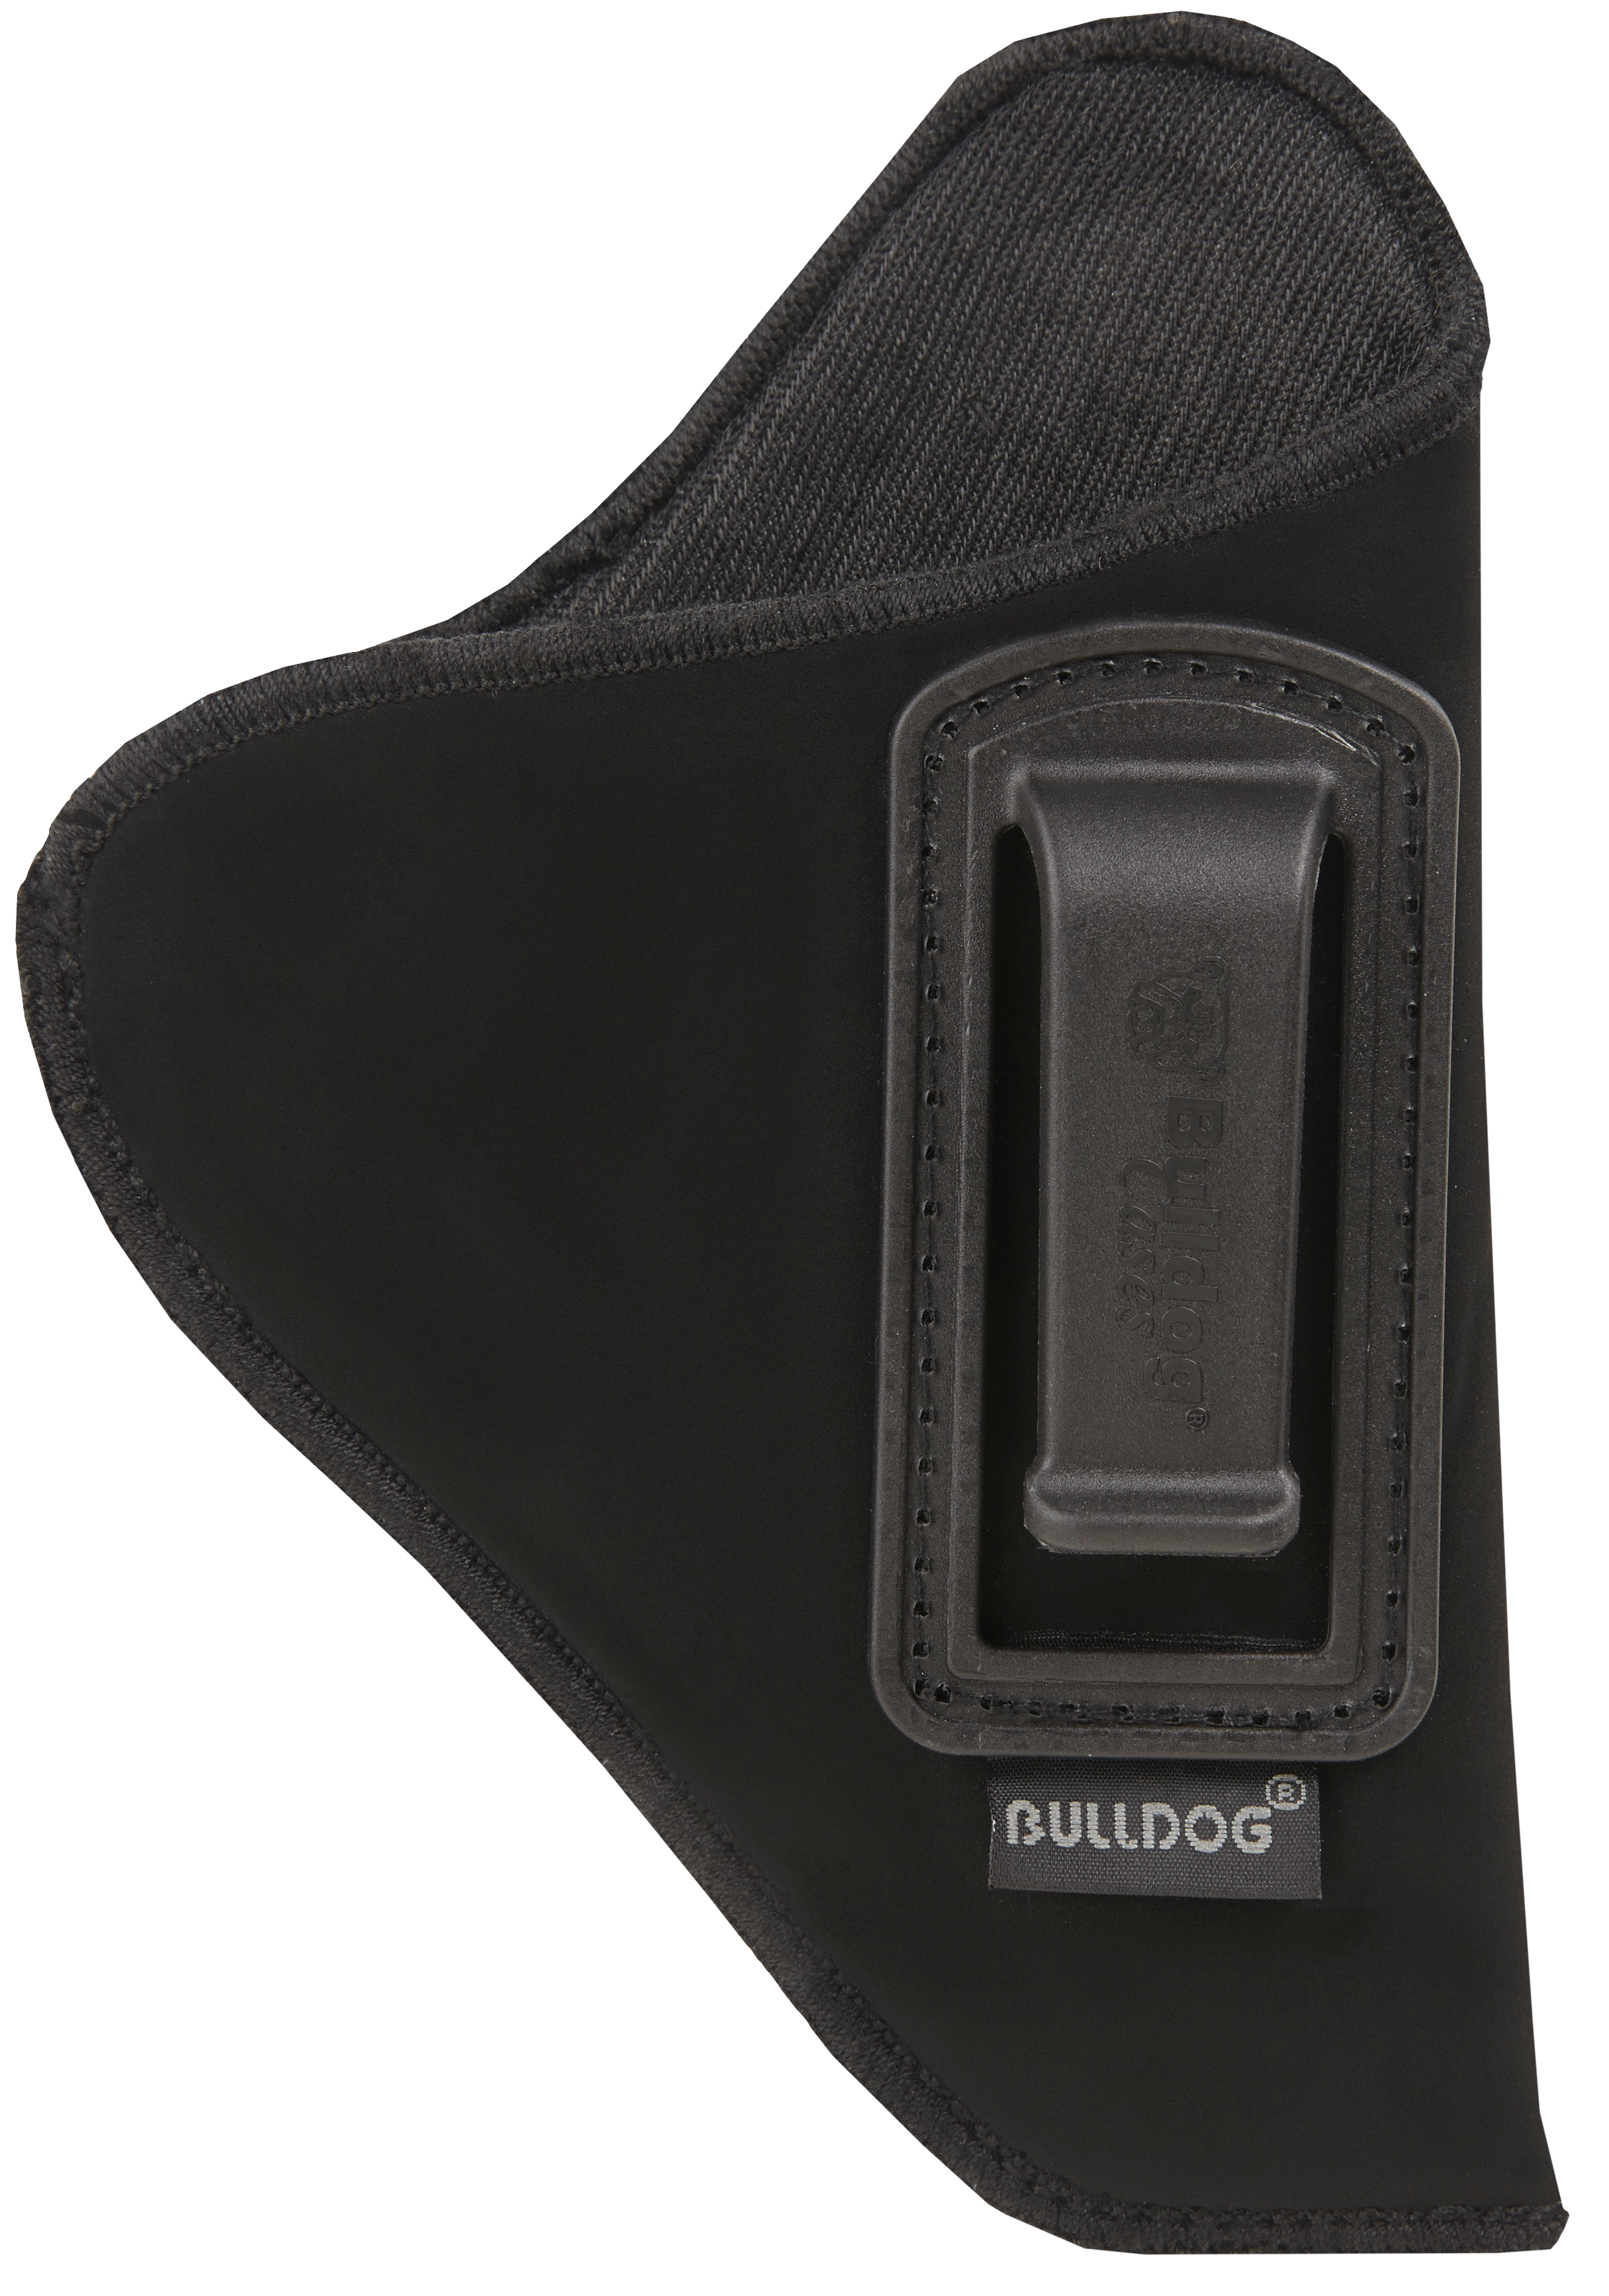 Bulldog DIP-20 Deluxe Inside Pants Holster Sub Compact 2